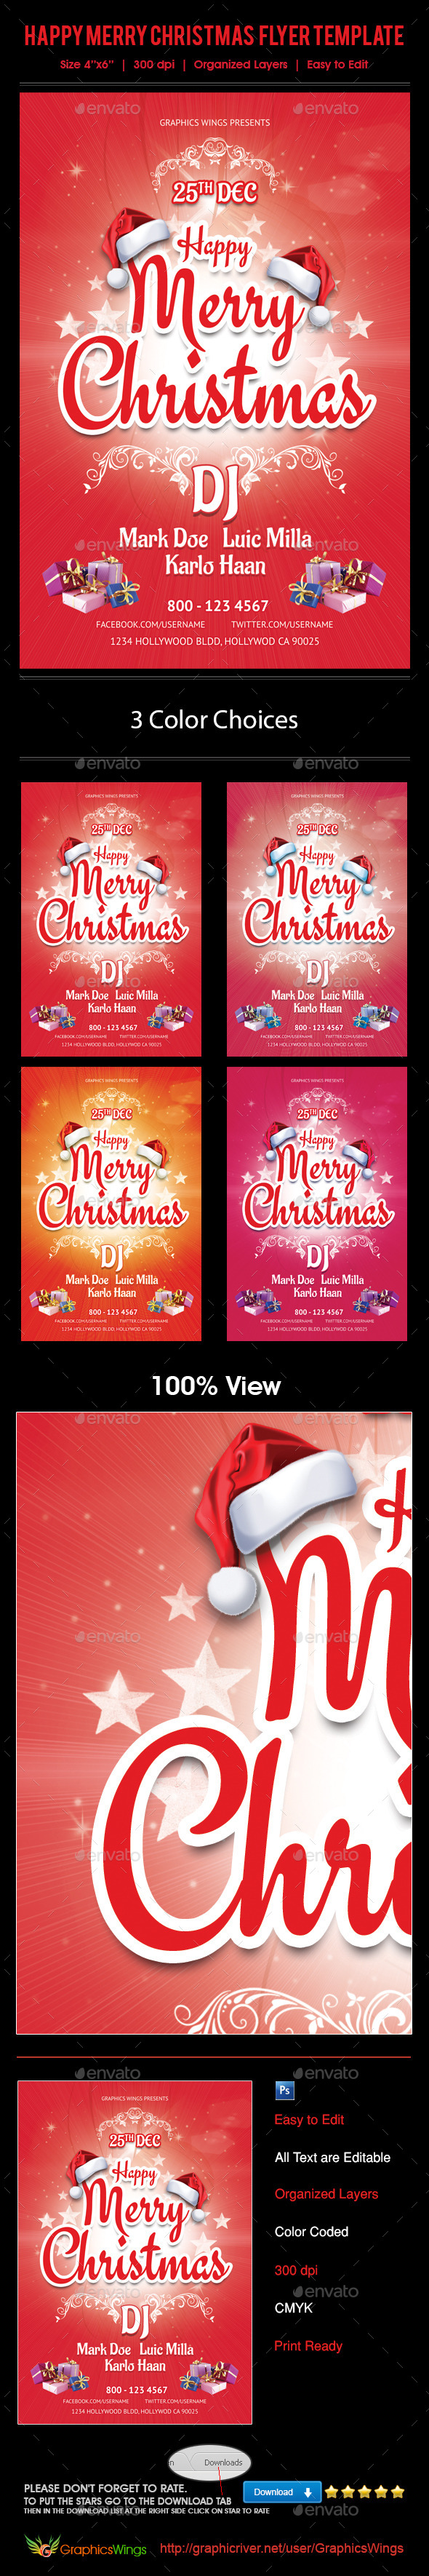 GraphicRiver Happy Christmas Flyer Template 9769843